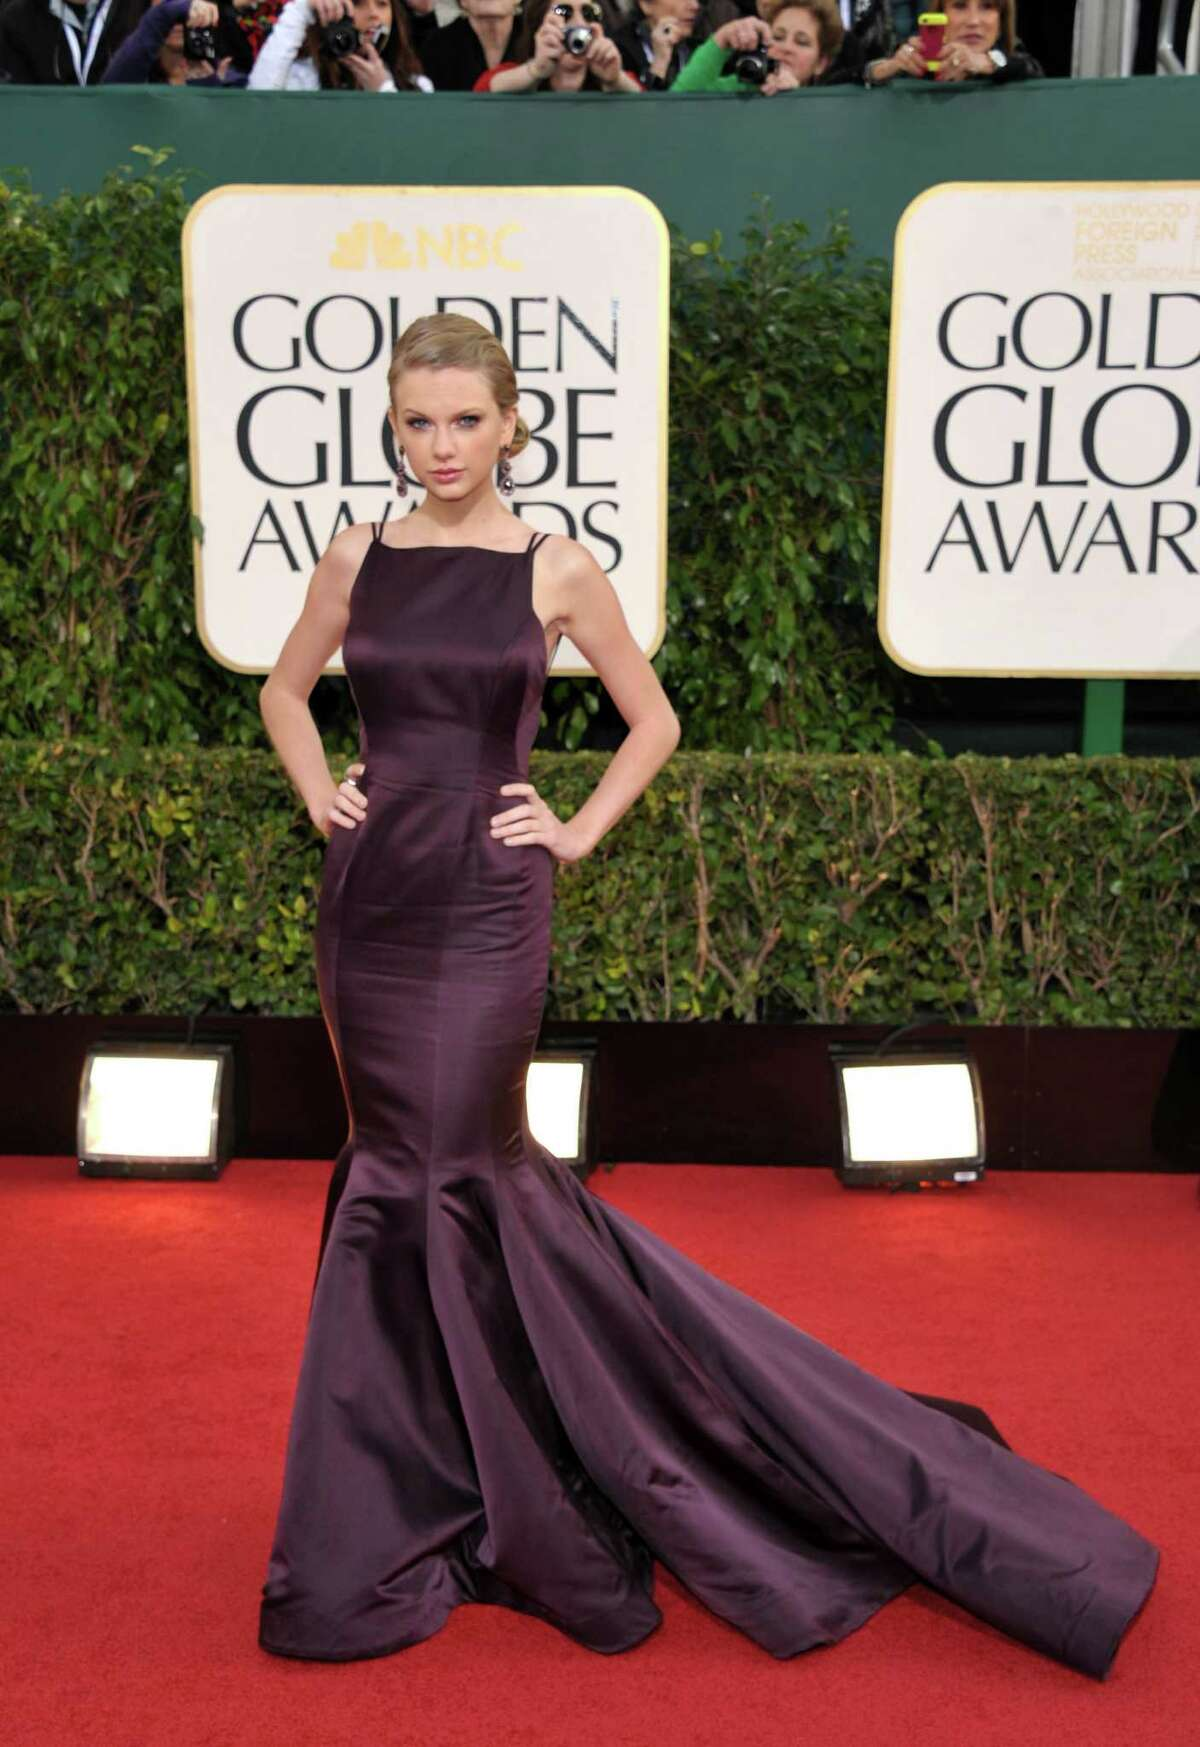 Best: Hitting the right note on the red carpet is partly about understanding the significance of the event -- the Golden Globes are a big deal in Hollywood -- but mostly about choosing the right dress for the occasion and then accessorizing appropriately. Taylor Swift (or her stylist) understood this perfectly with this Donna Karan Atelier creation in purple, a color not frequently seen on the red carpet. The dress is bold enough to require little extra effort on her part, and she got out of the way and let it speak for itself.